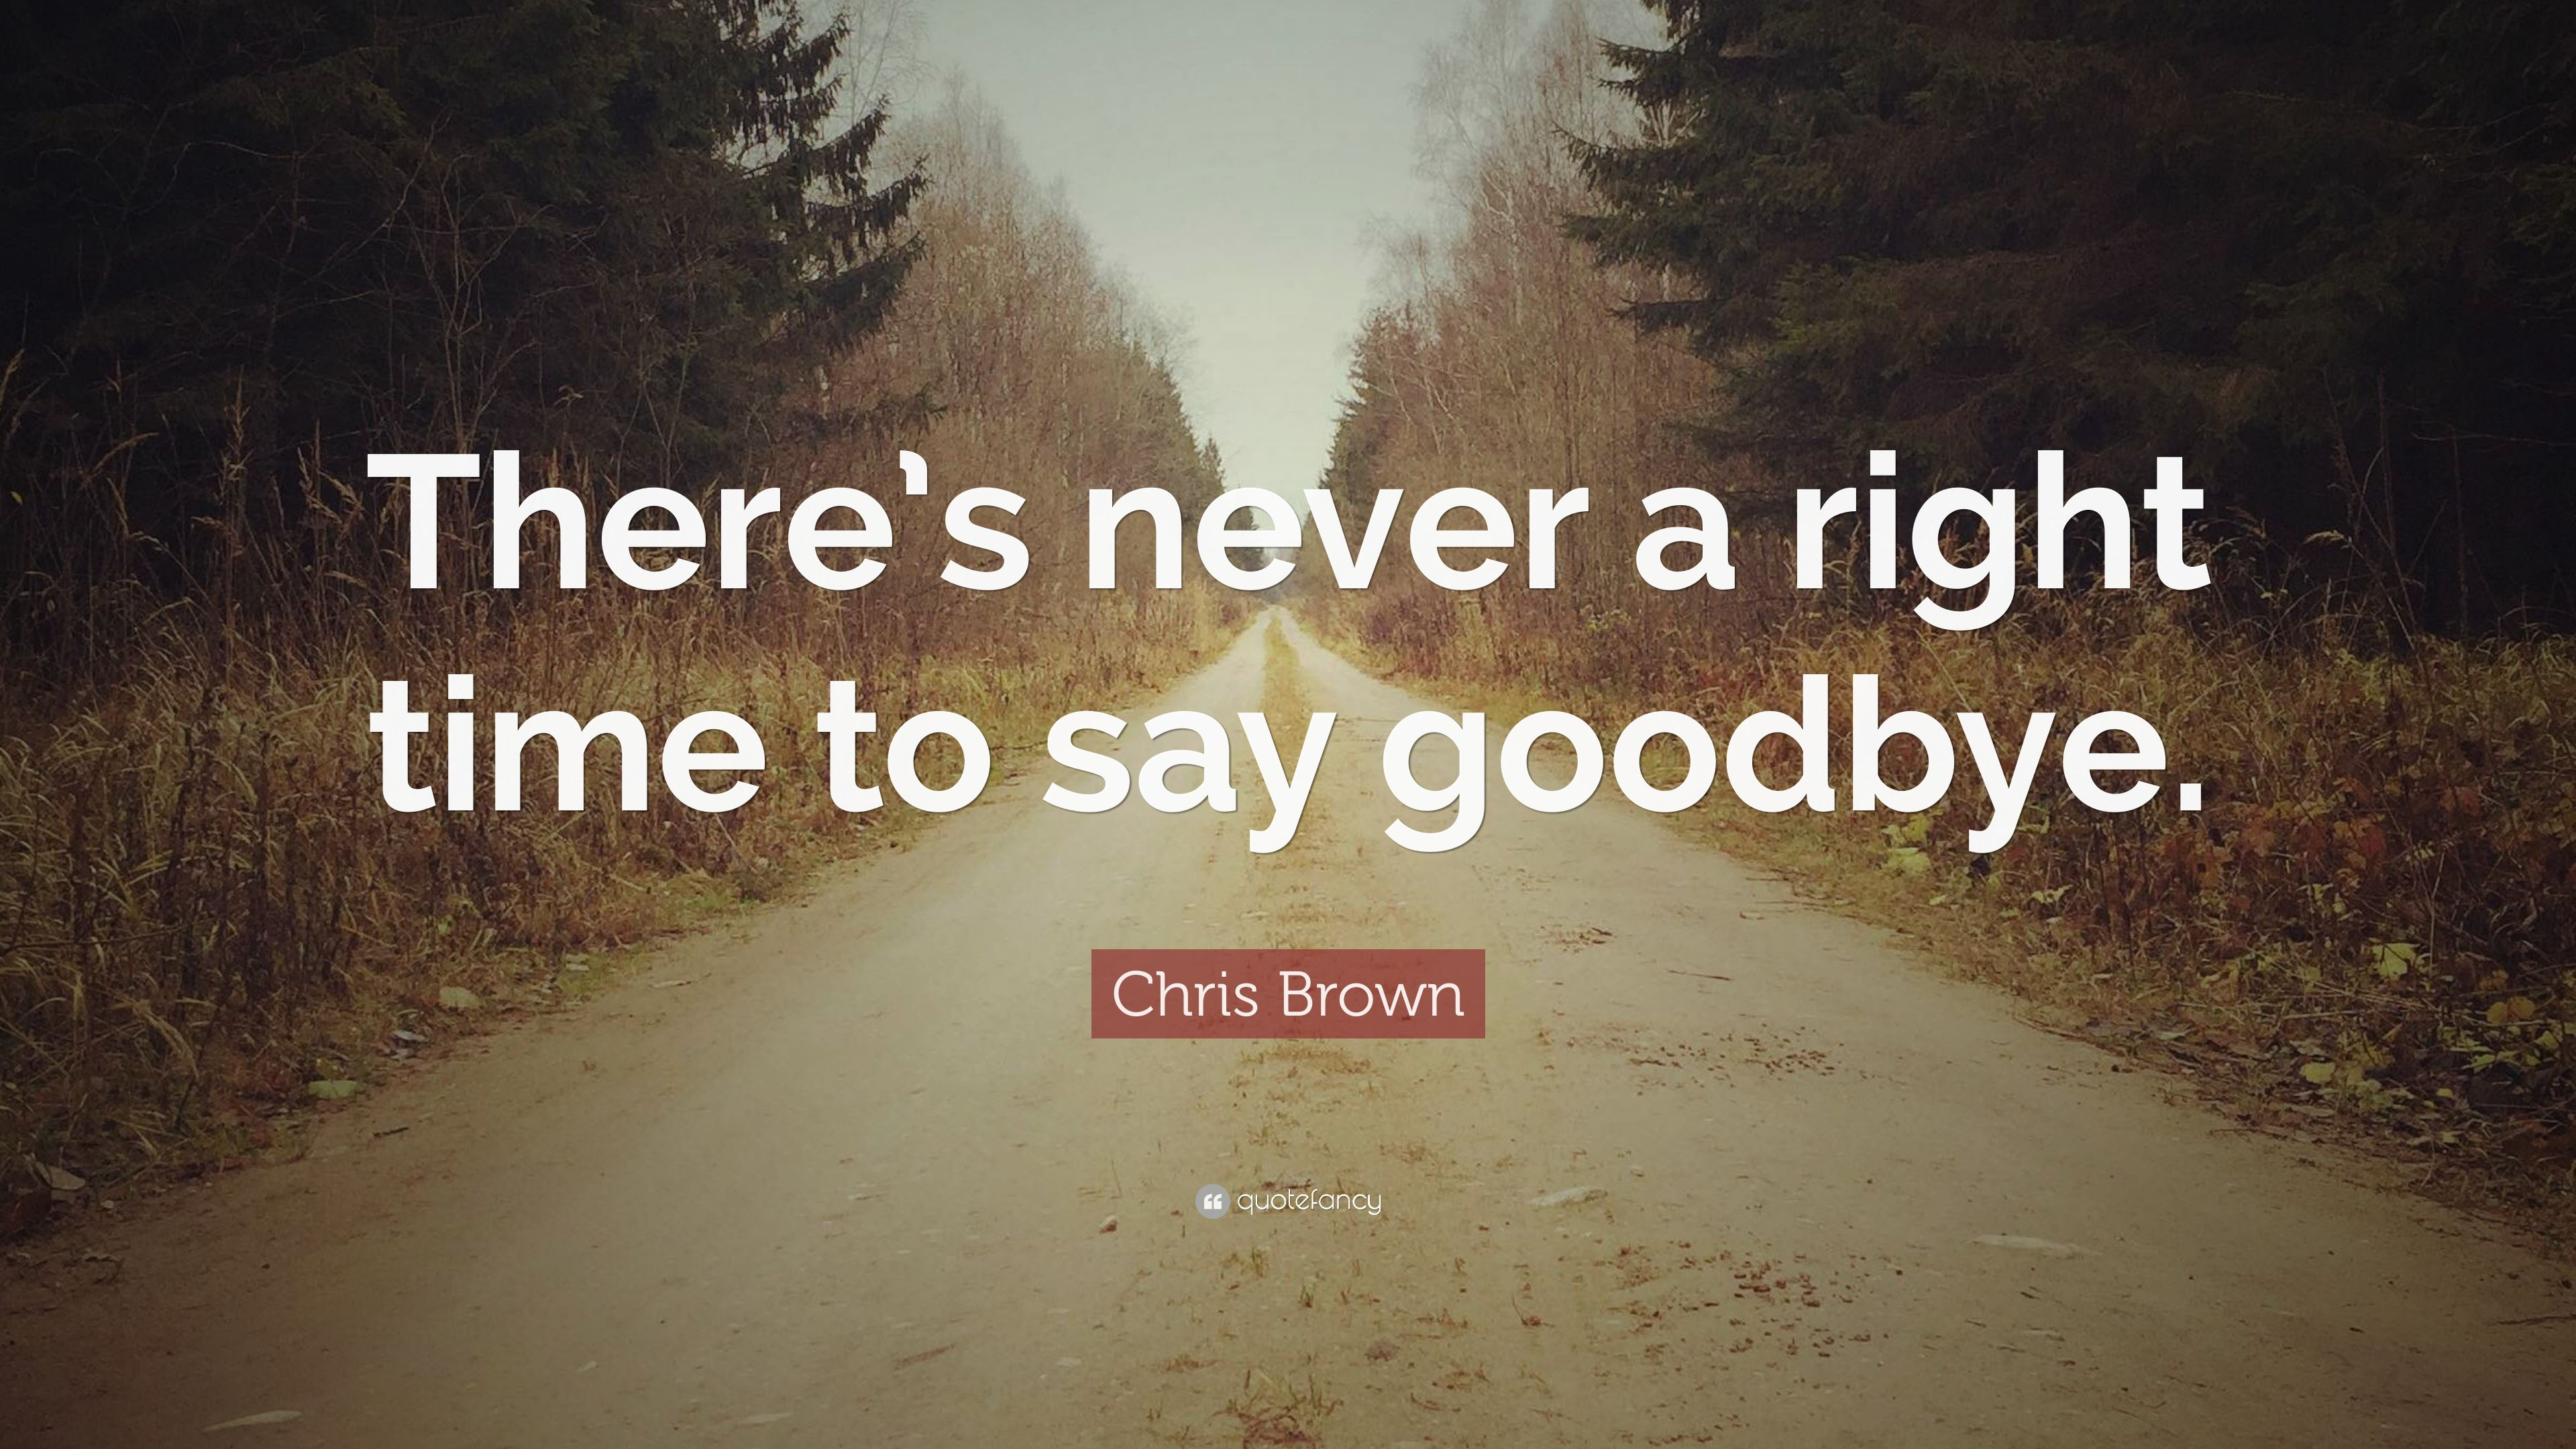 A Life Well Lived Quotes Chris Brown Quotes 9 Wallpapers  Quotefancy  Life  Pinterest